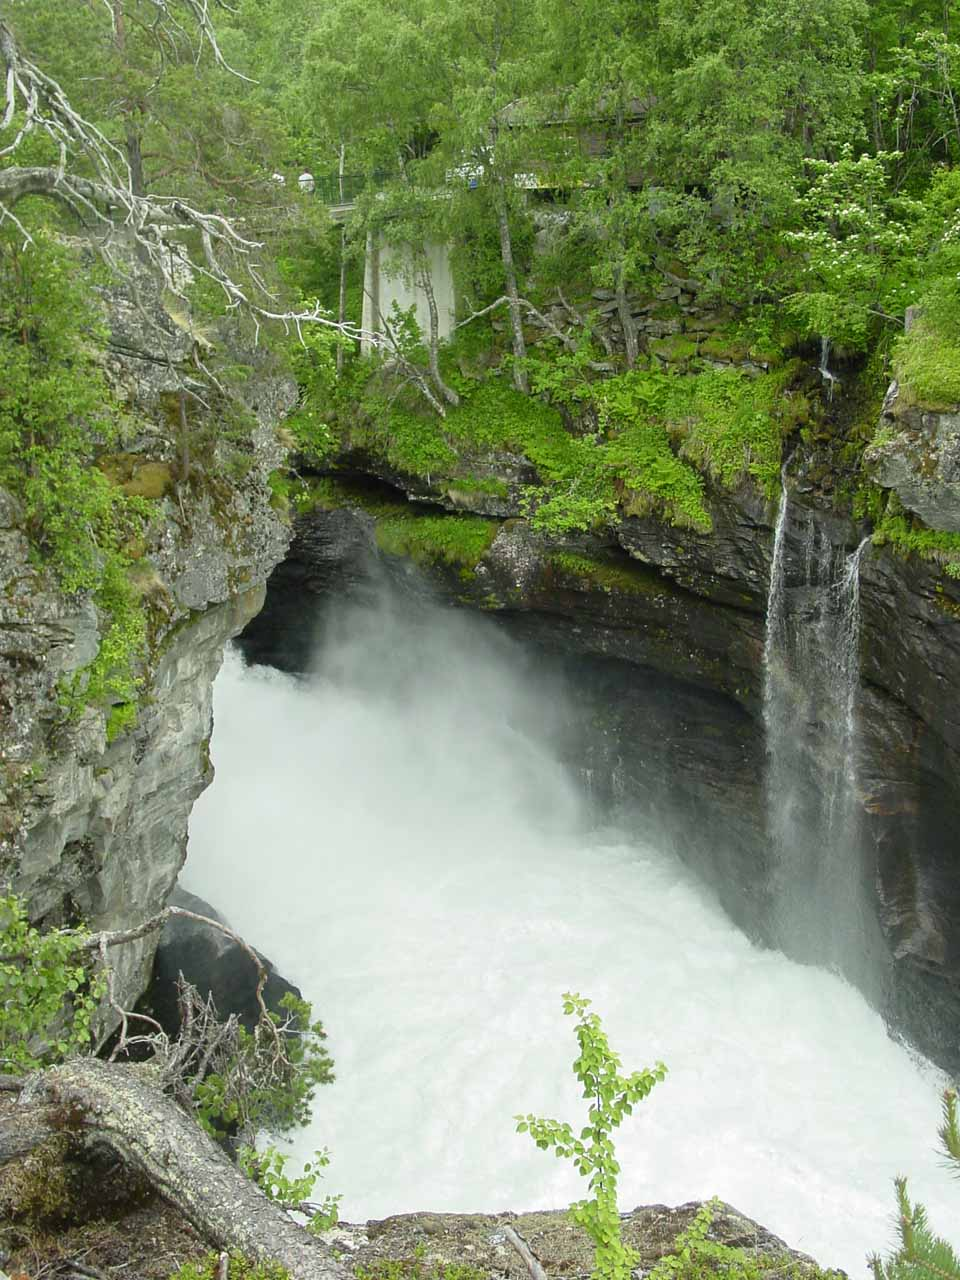 Our first look at the turbulence of Slettafossen